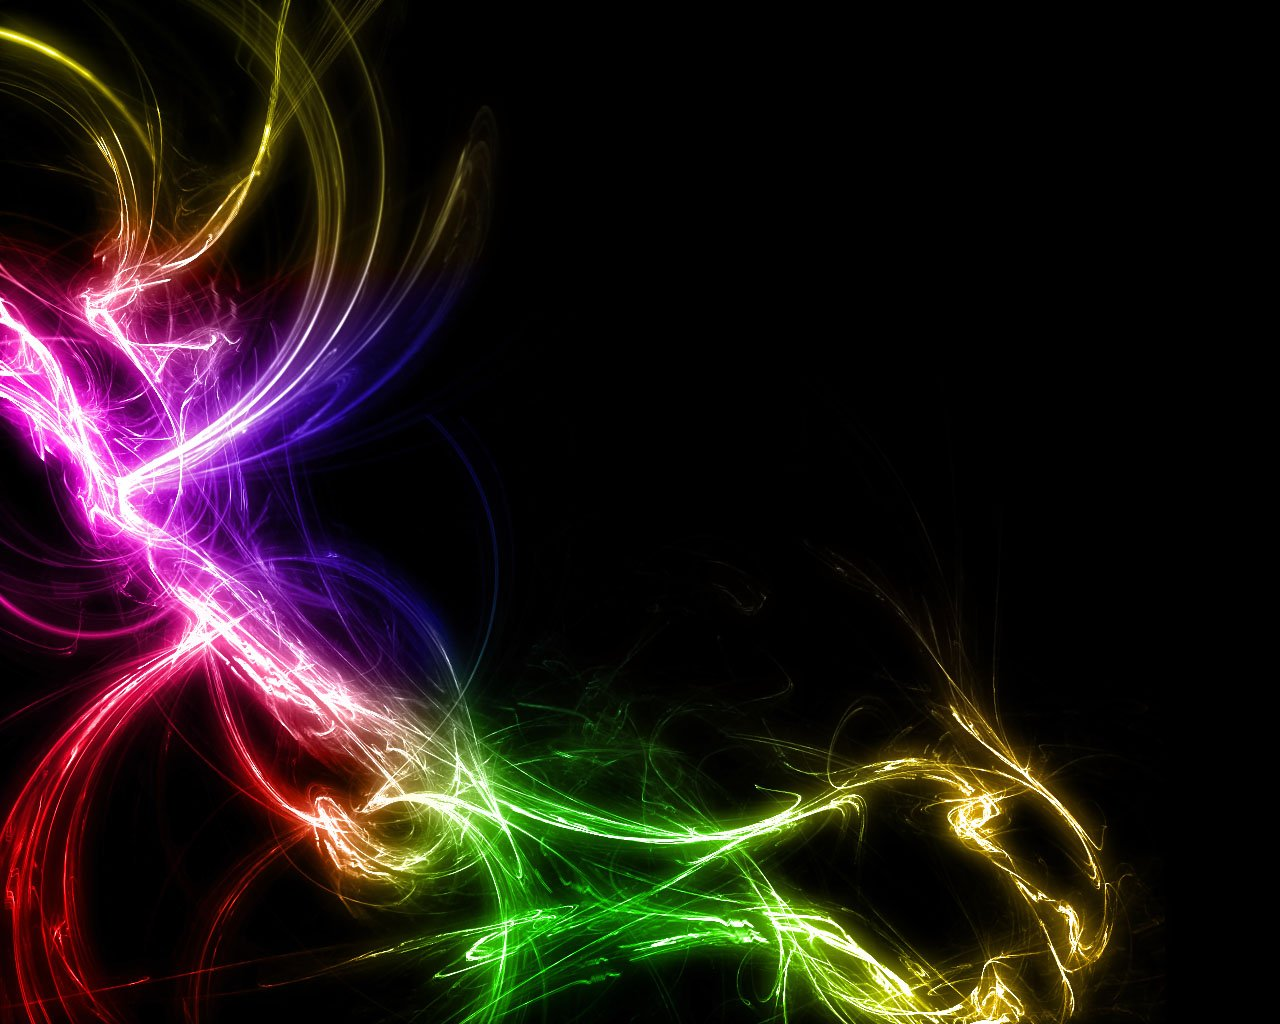 Abstract Wallpapers HD Nice Wallpapers 1280x1024